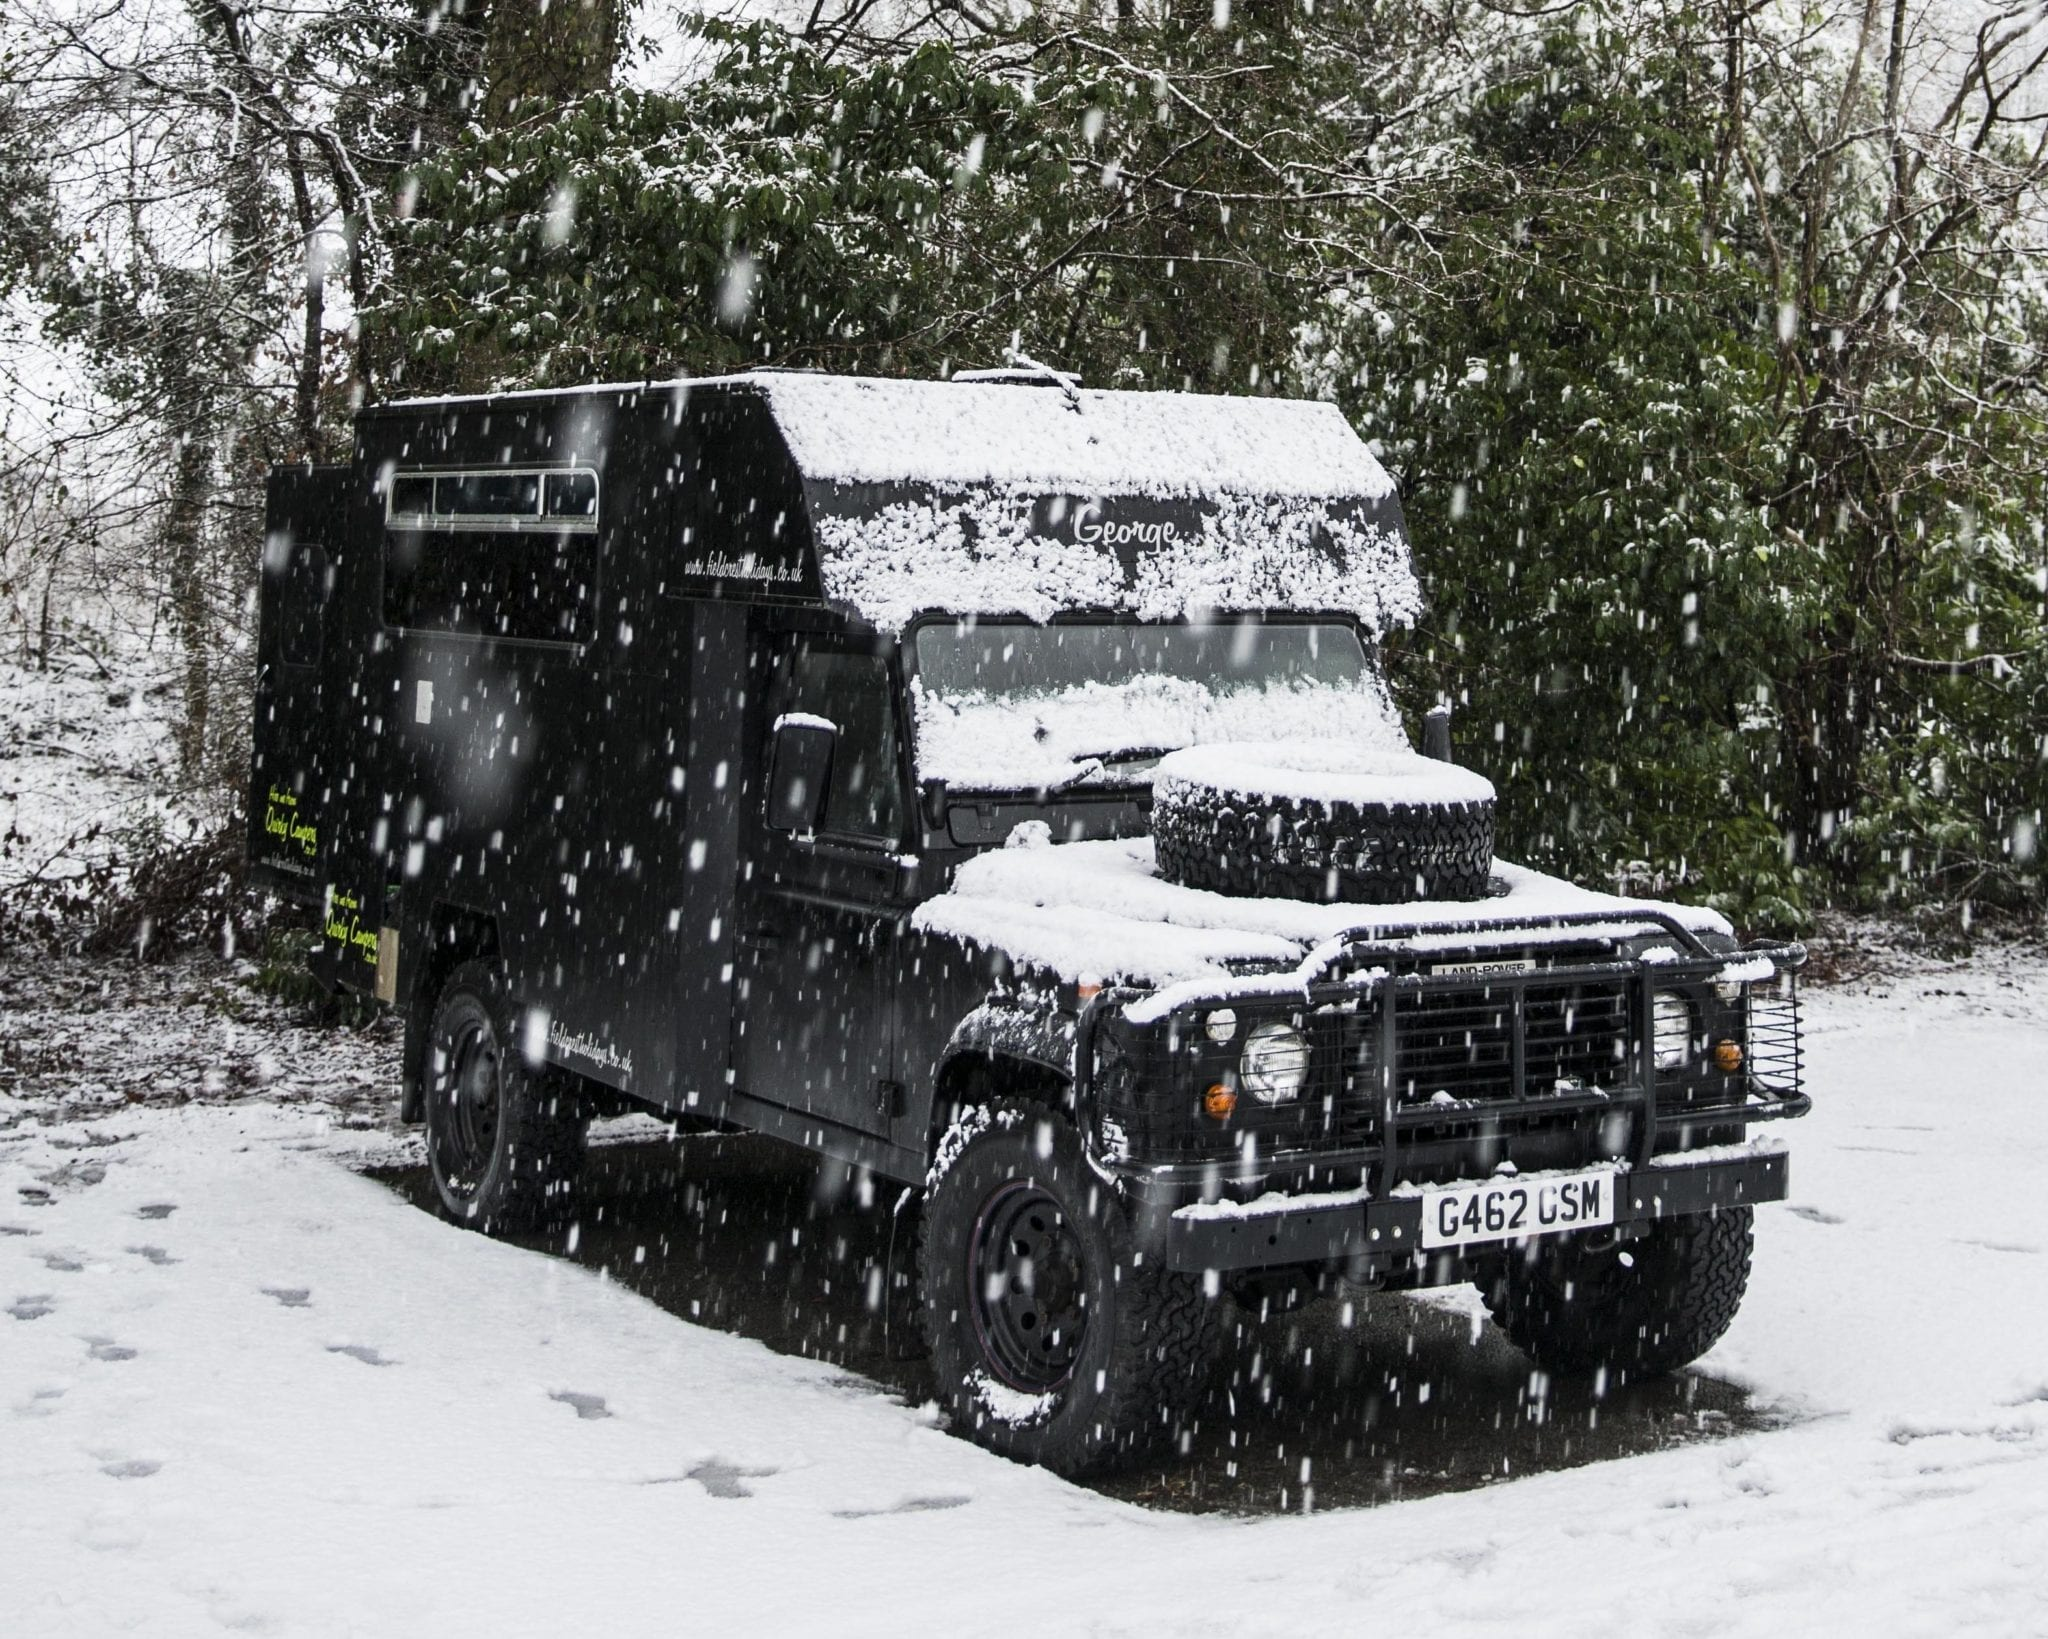 A campervan in the snow on an adventure holiday in UK